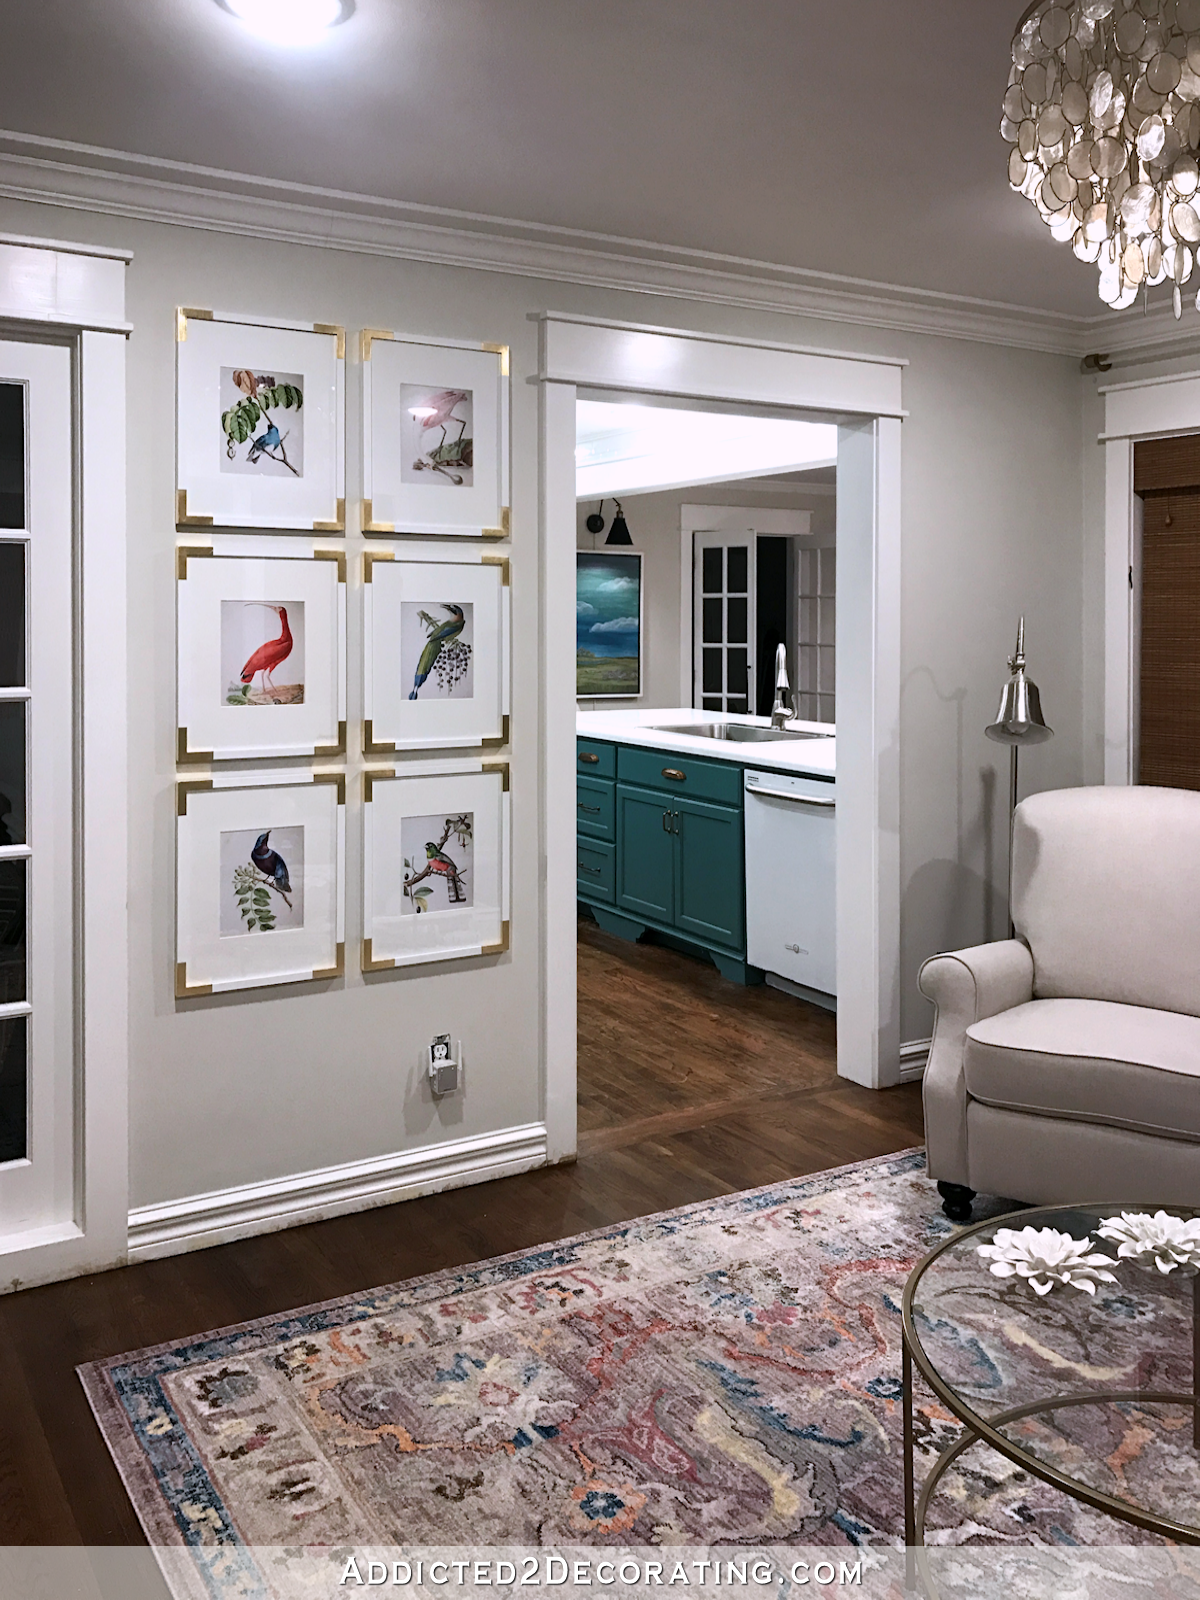 living room gallery wall with colorful bird illustrations - 1